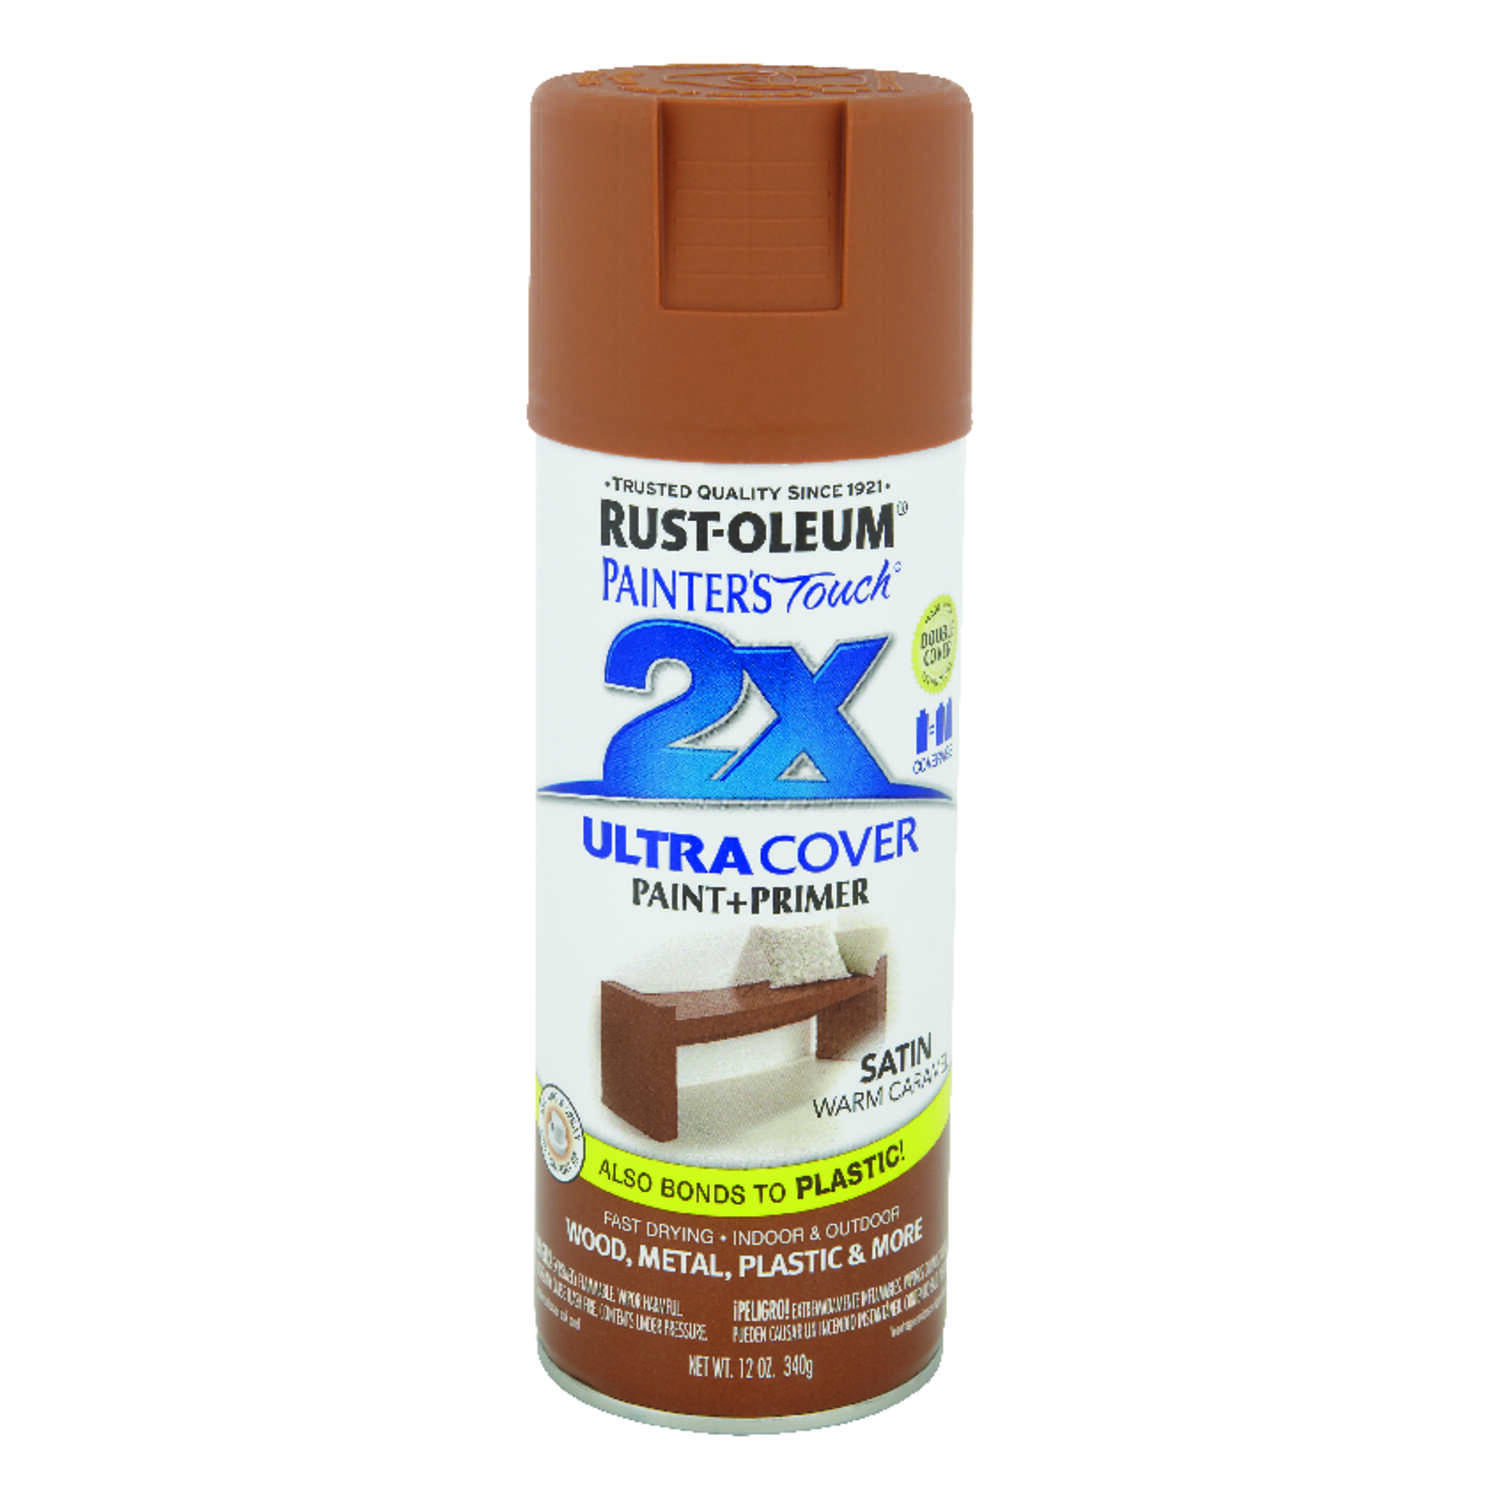 Rust-Oleum  Painter's Touch Ultra Cover  Satin  Warm Caramel  Spray Paint  12 oz.